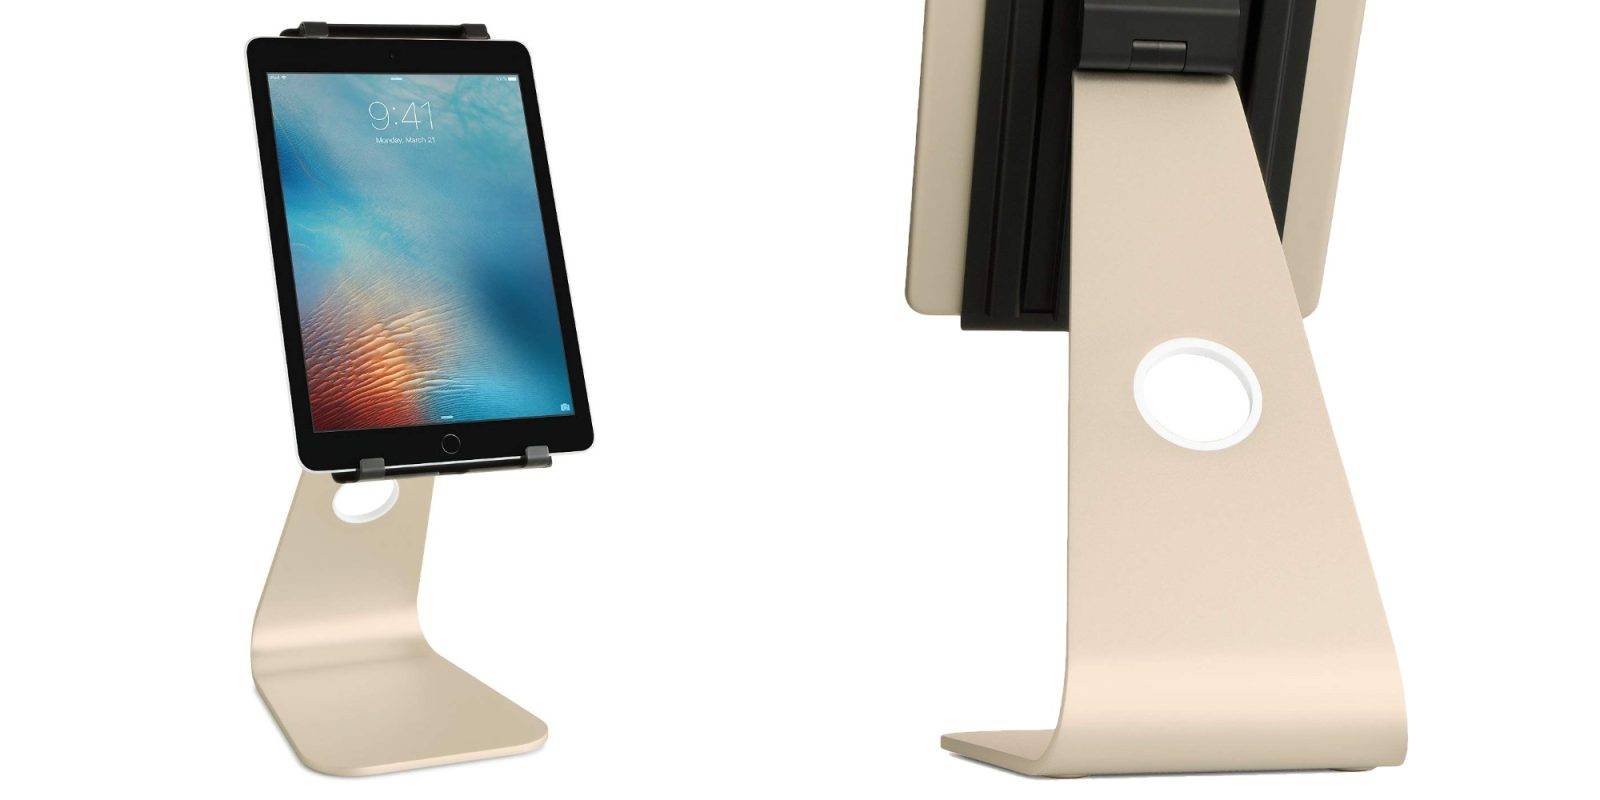 Rain Design's mStand for iPad is SideCar-ready at a new low of $18 (Reg. $40)